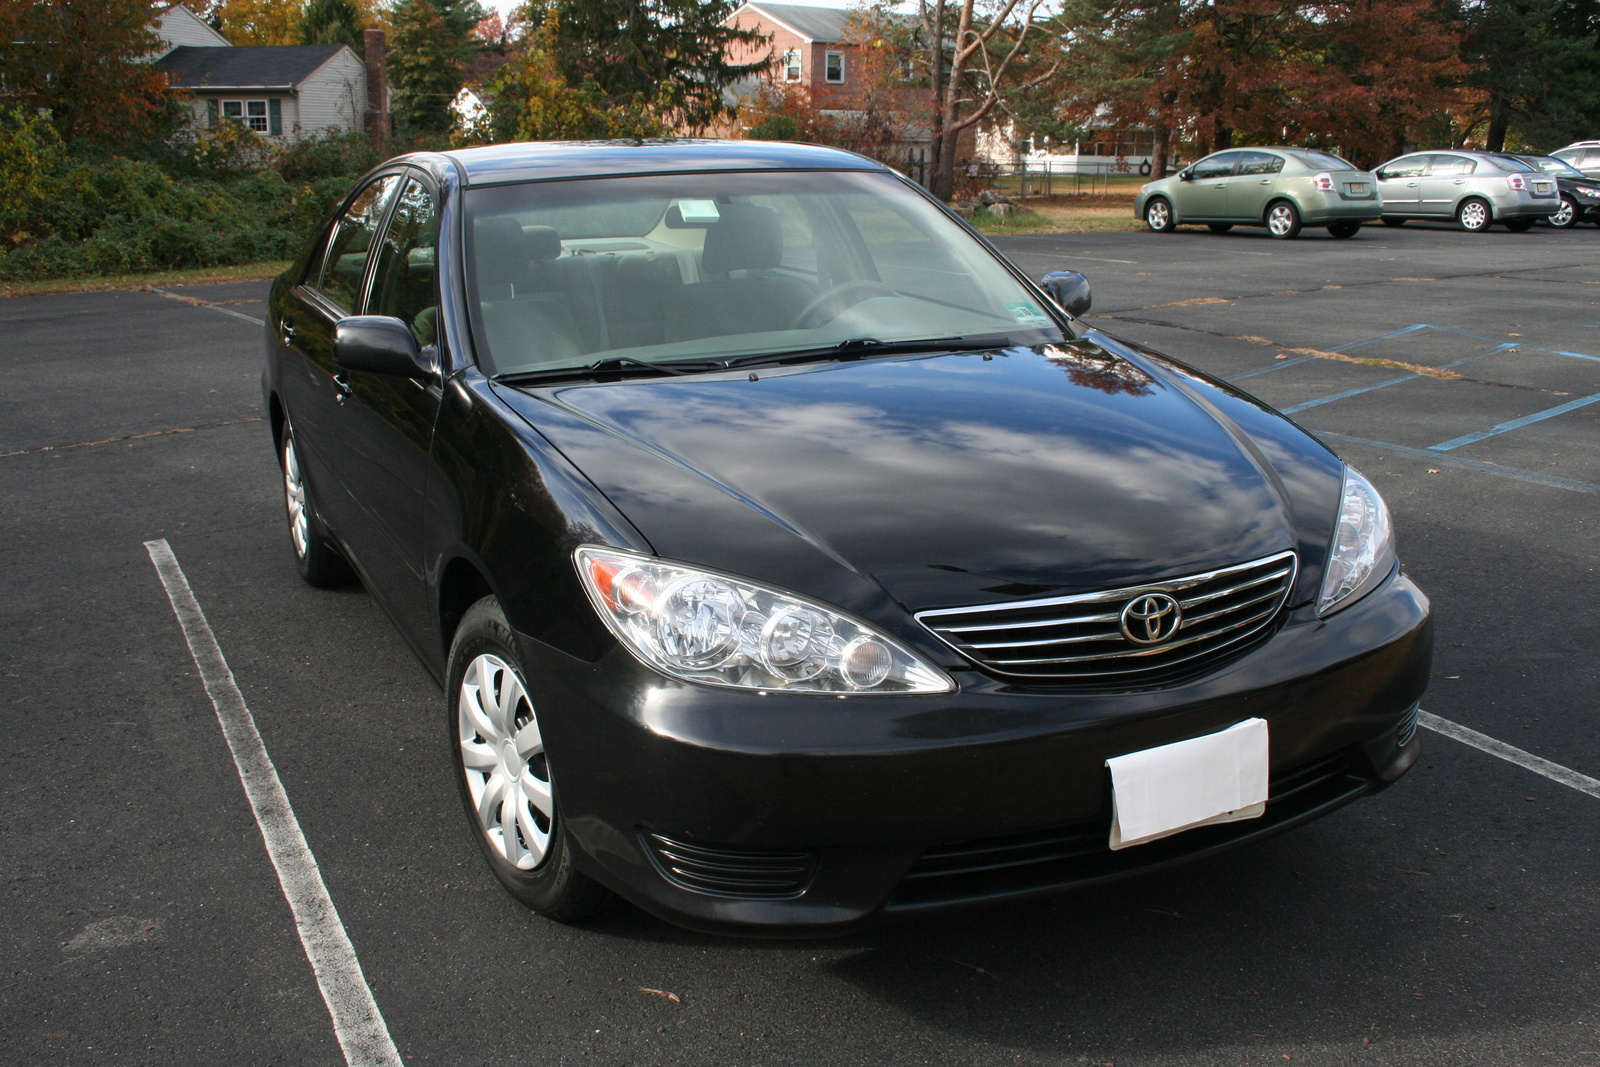 toyota camry le 2005 2005 toyota camry exterior pictures cargurus 2005 toyota camry exterior. Black Bedroom Furniture Sets. Home Design Ideas